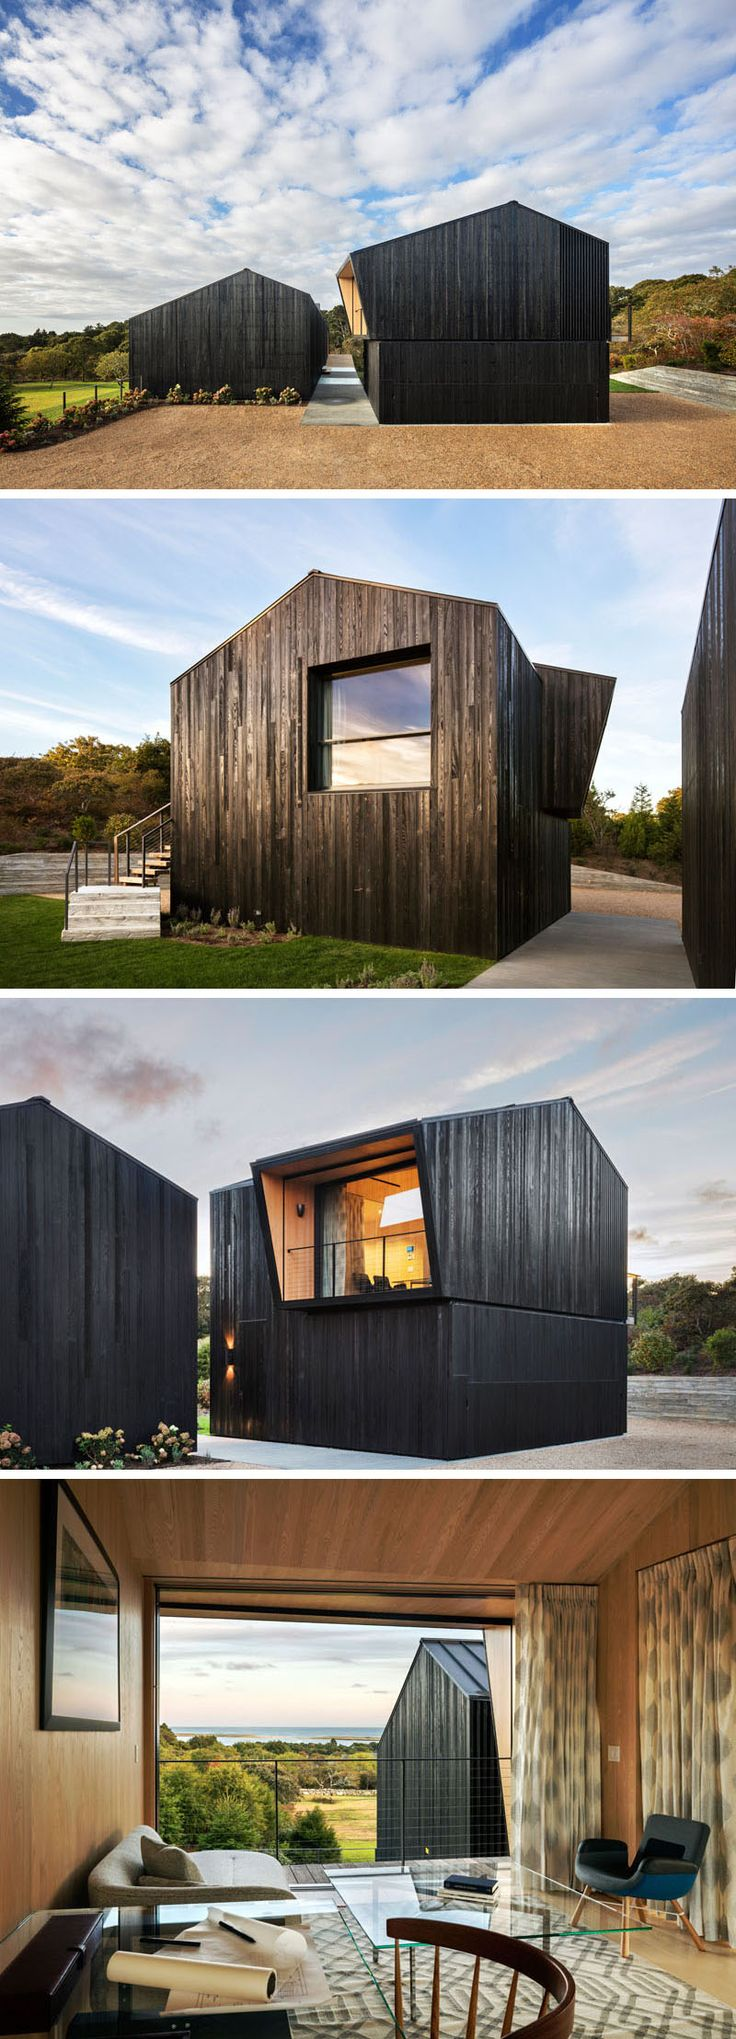 Shou Sugi Ban or blackened cedar wood siding, covers this modern house and separate garage. Upon arriving at the house, you see that the garage and the house are split, with a pathway between the two. A home office with views of the water sits above the garage and can be reached via a set of stairs on the exterior of the garage.